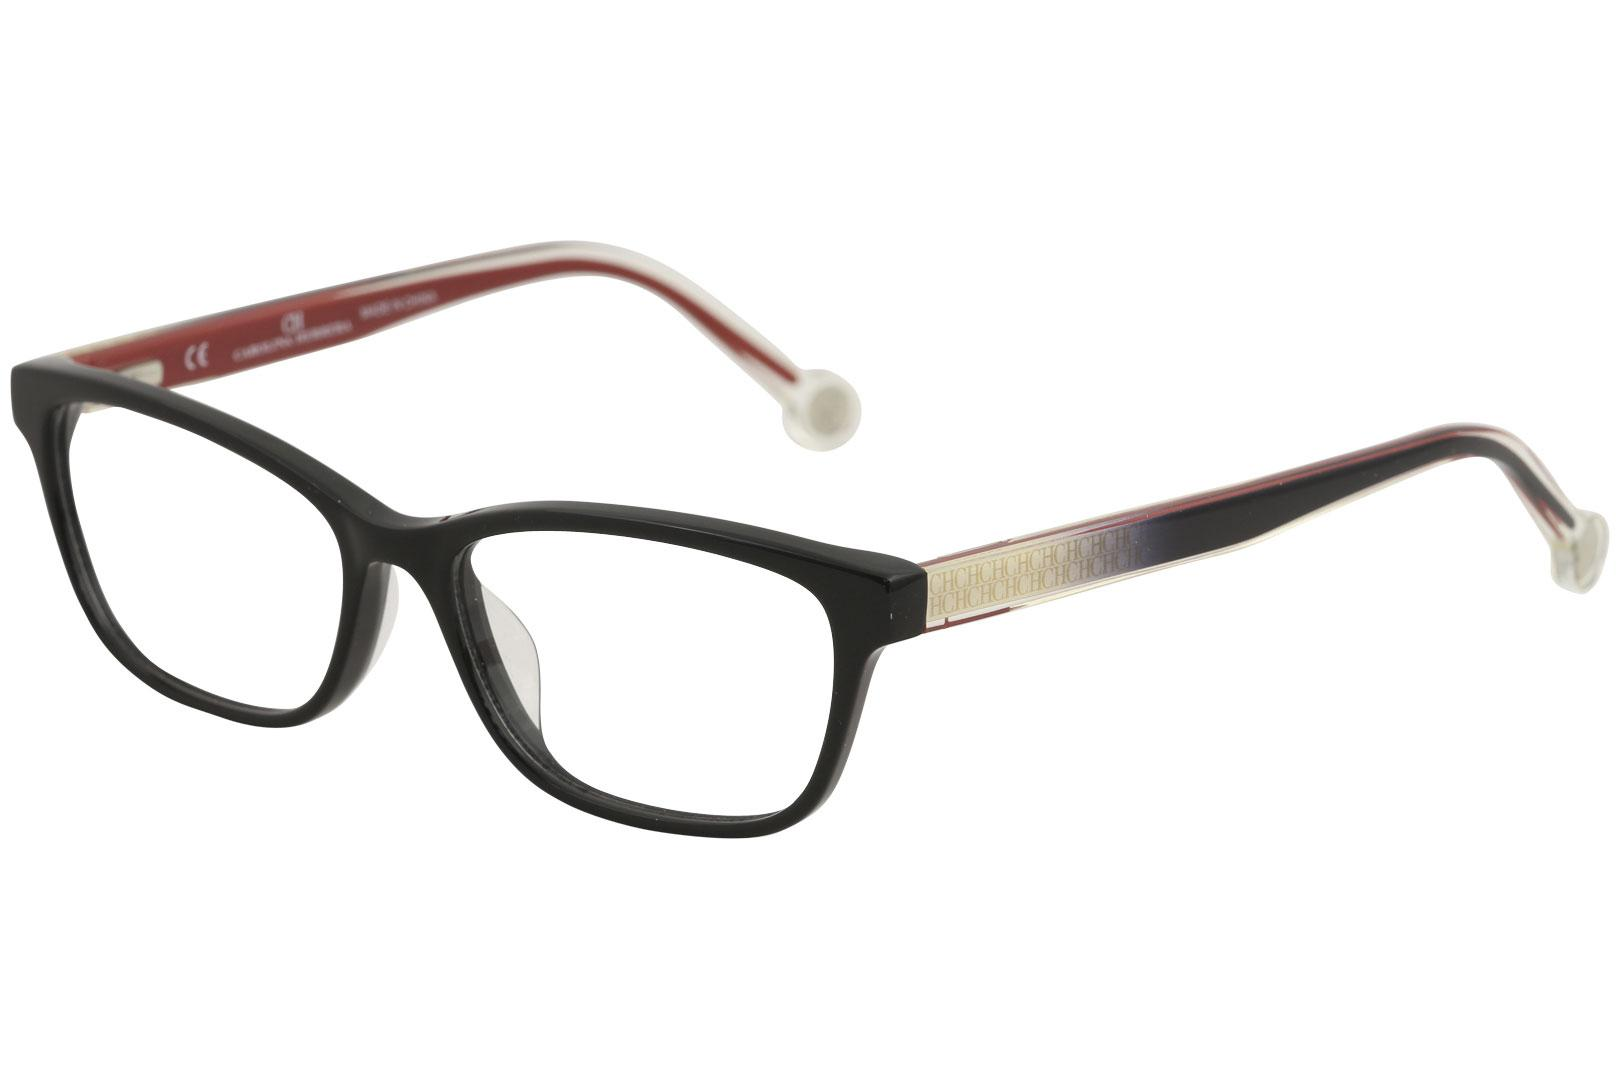 62d3b92c849 CH Carolina Herrera Women s Eyeglasses VHE725K VHE 725K Full Rim Optical  Frame